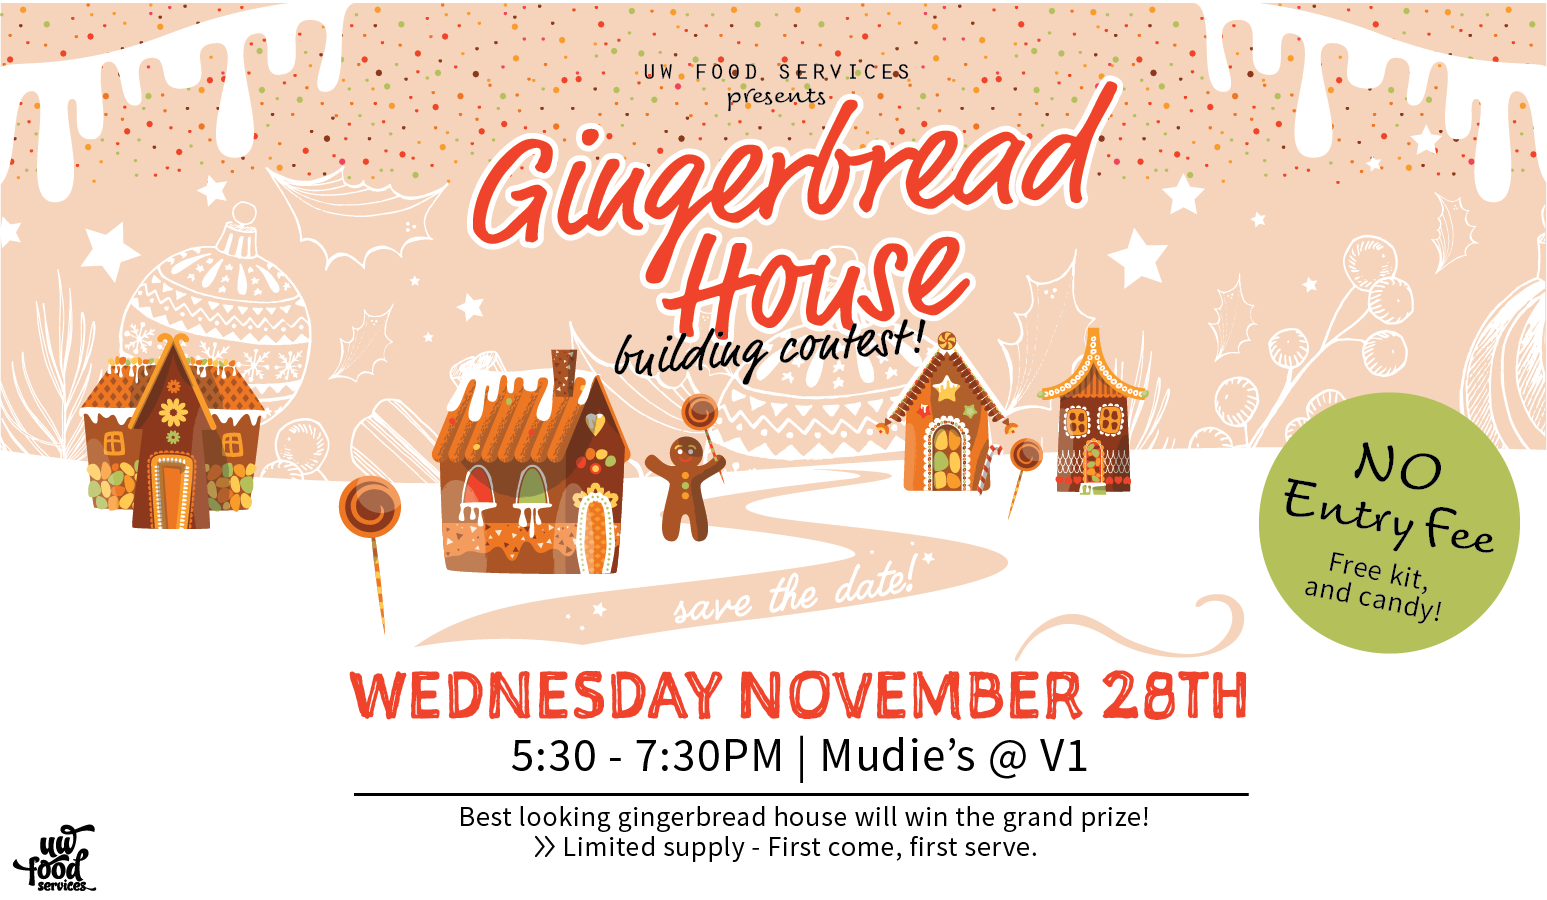 Gingerbread house event poster